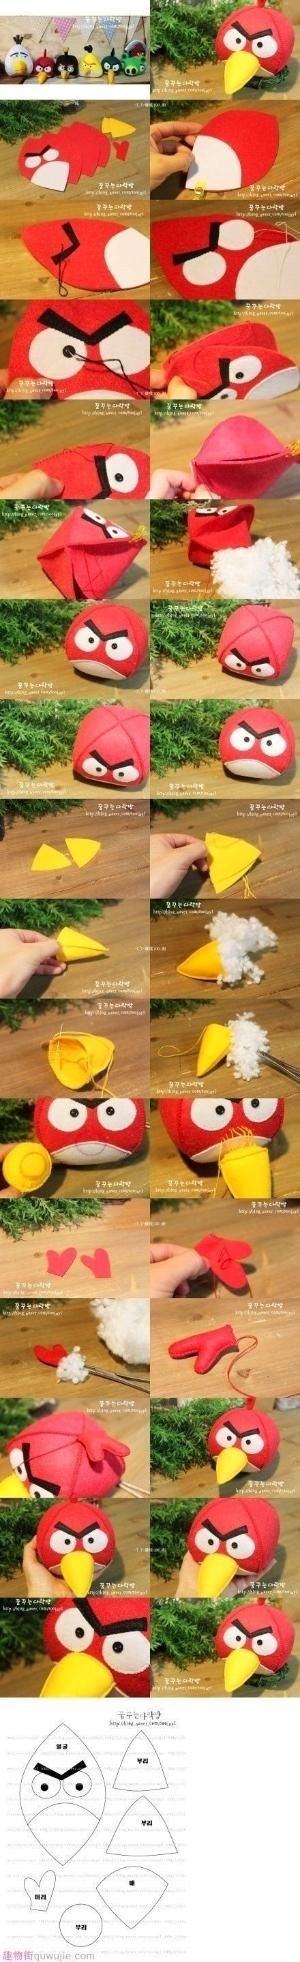 DIY Angry Bird Doll by gena